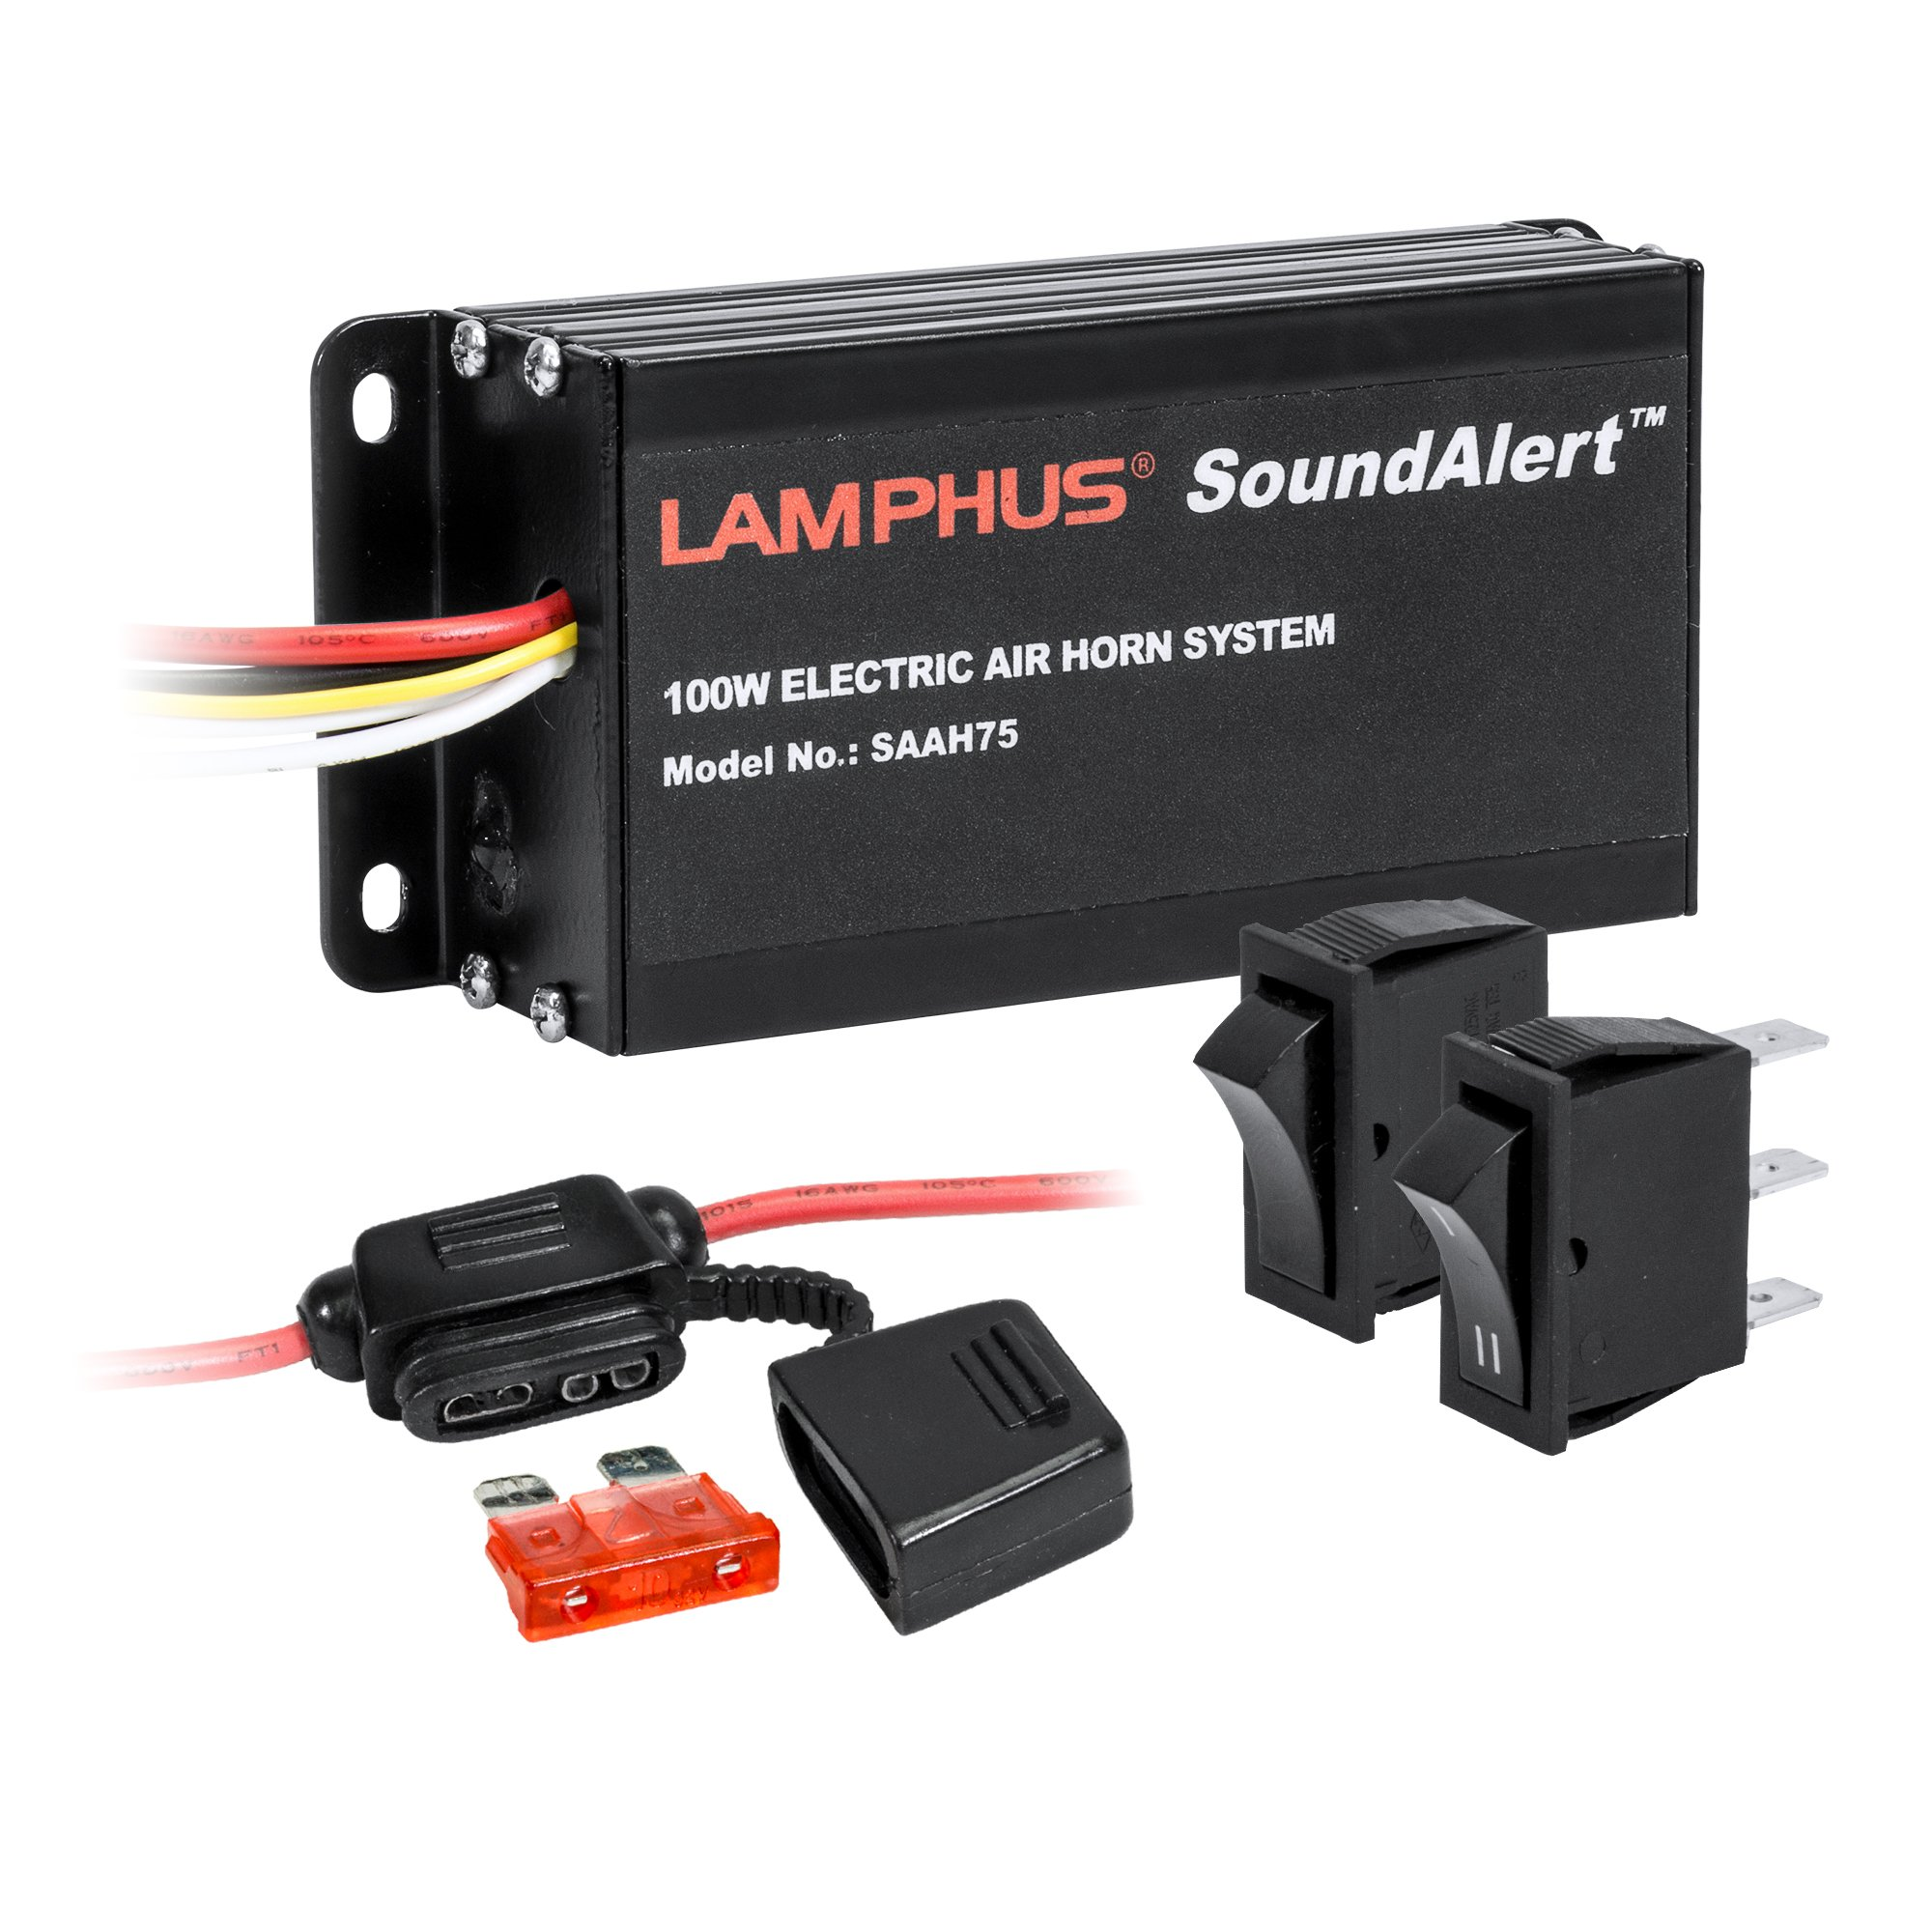 Cheap Electronic Amplifier Find Deals On Line Power Otl For Cassette Radio Booster It Have Transistor Get Quotations Lamphus Soundalert Saah75 100w Air Horn Trucks Cars